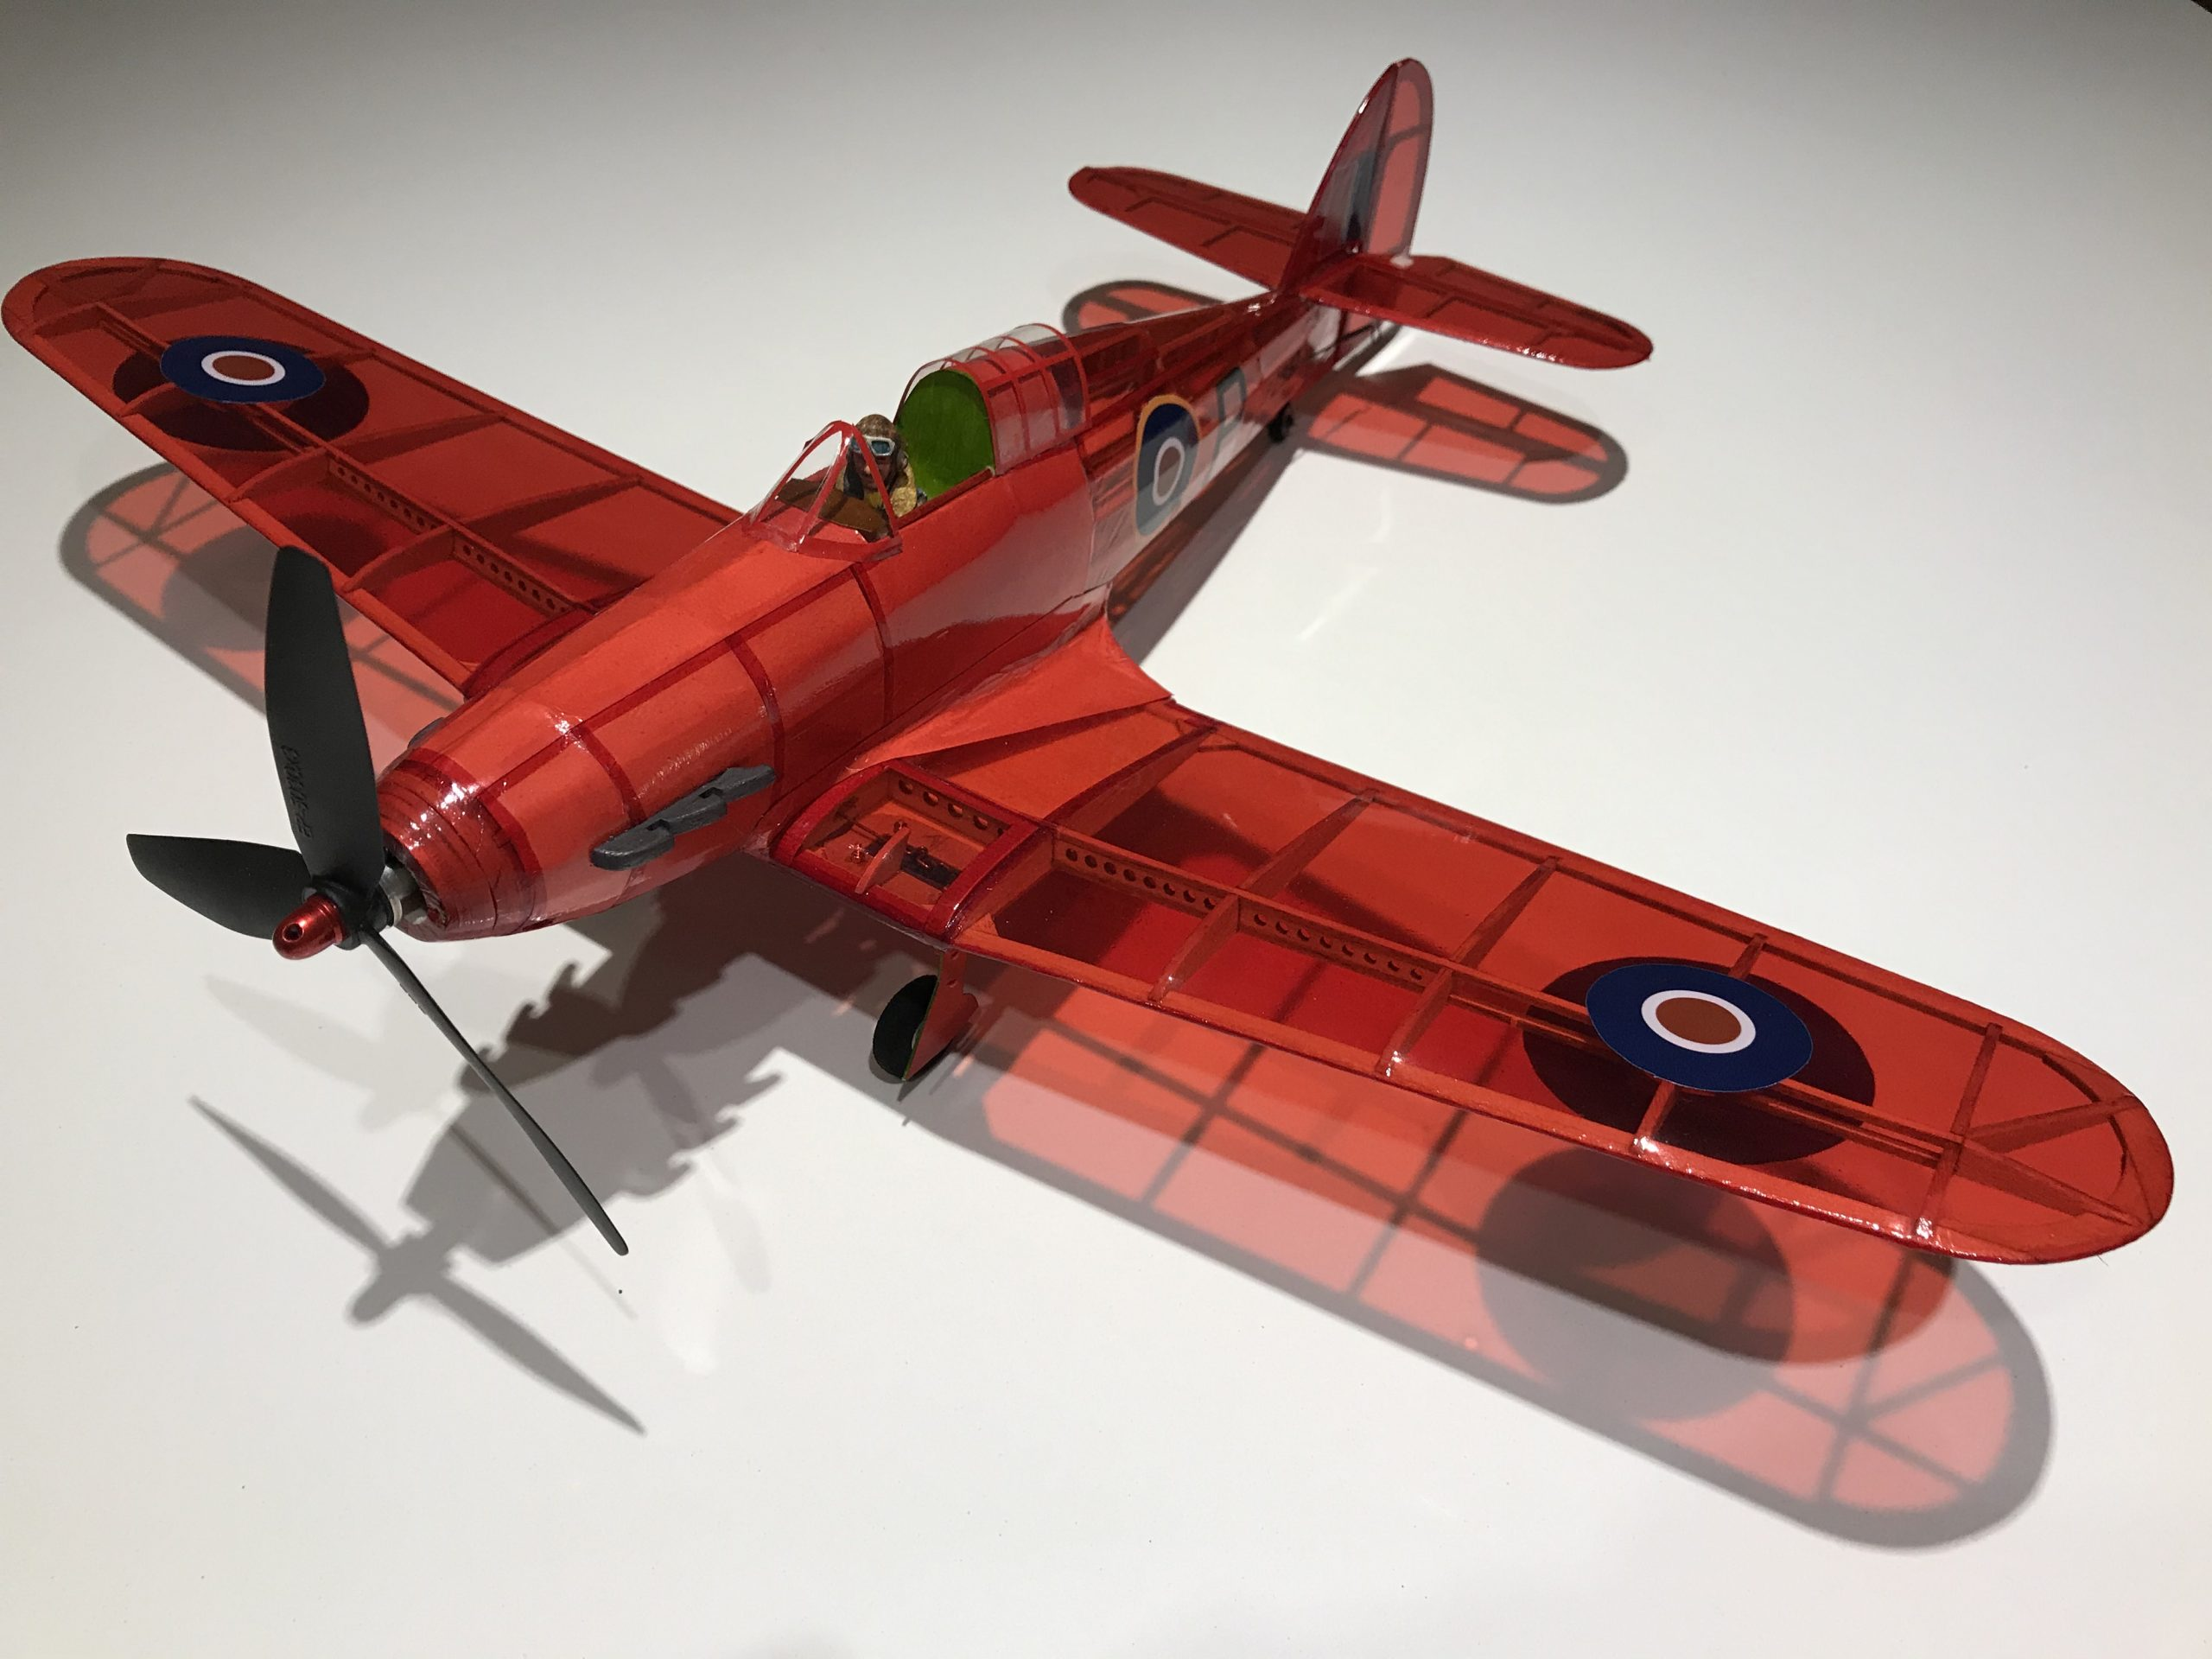 Hurricane, just awaiting a spinner and test flight